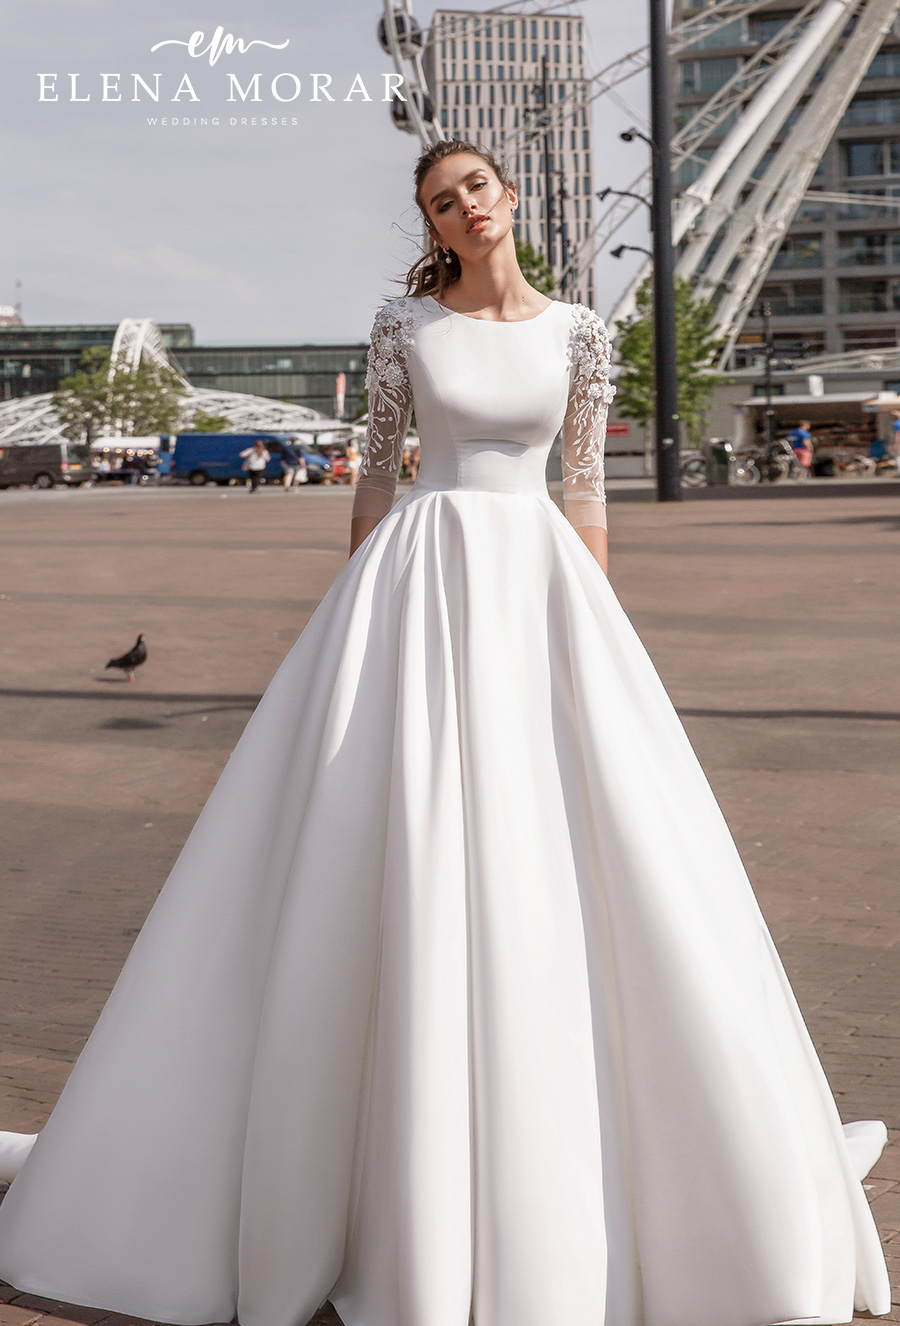 elena morar 2021 rotterdam bridal three quarter sleeves jewel neck simple minimalist princess elegant a line wedding dress corset back chapel train (rm029) mv